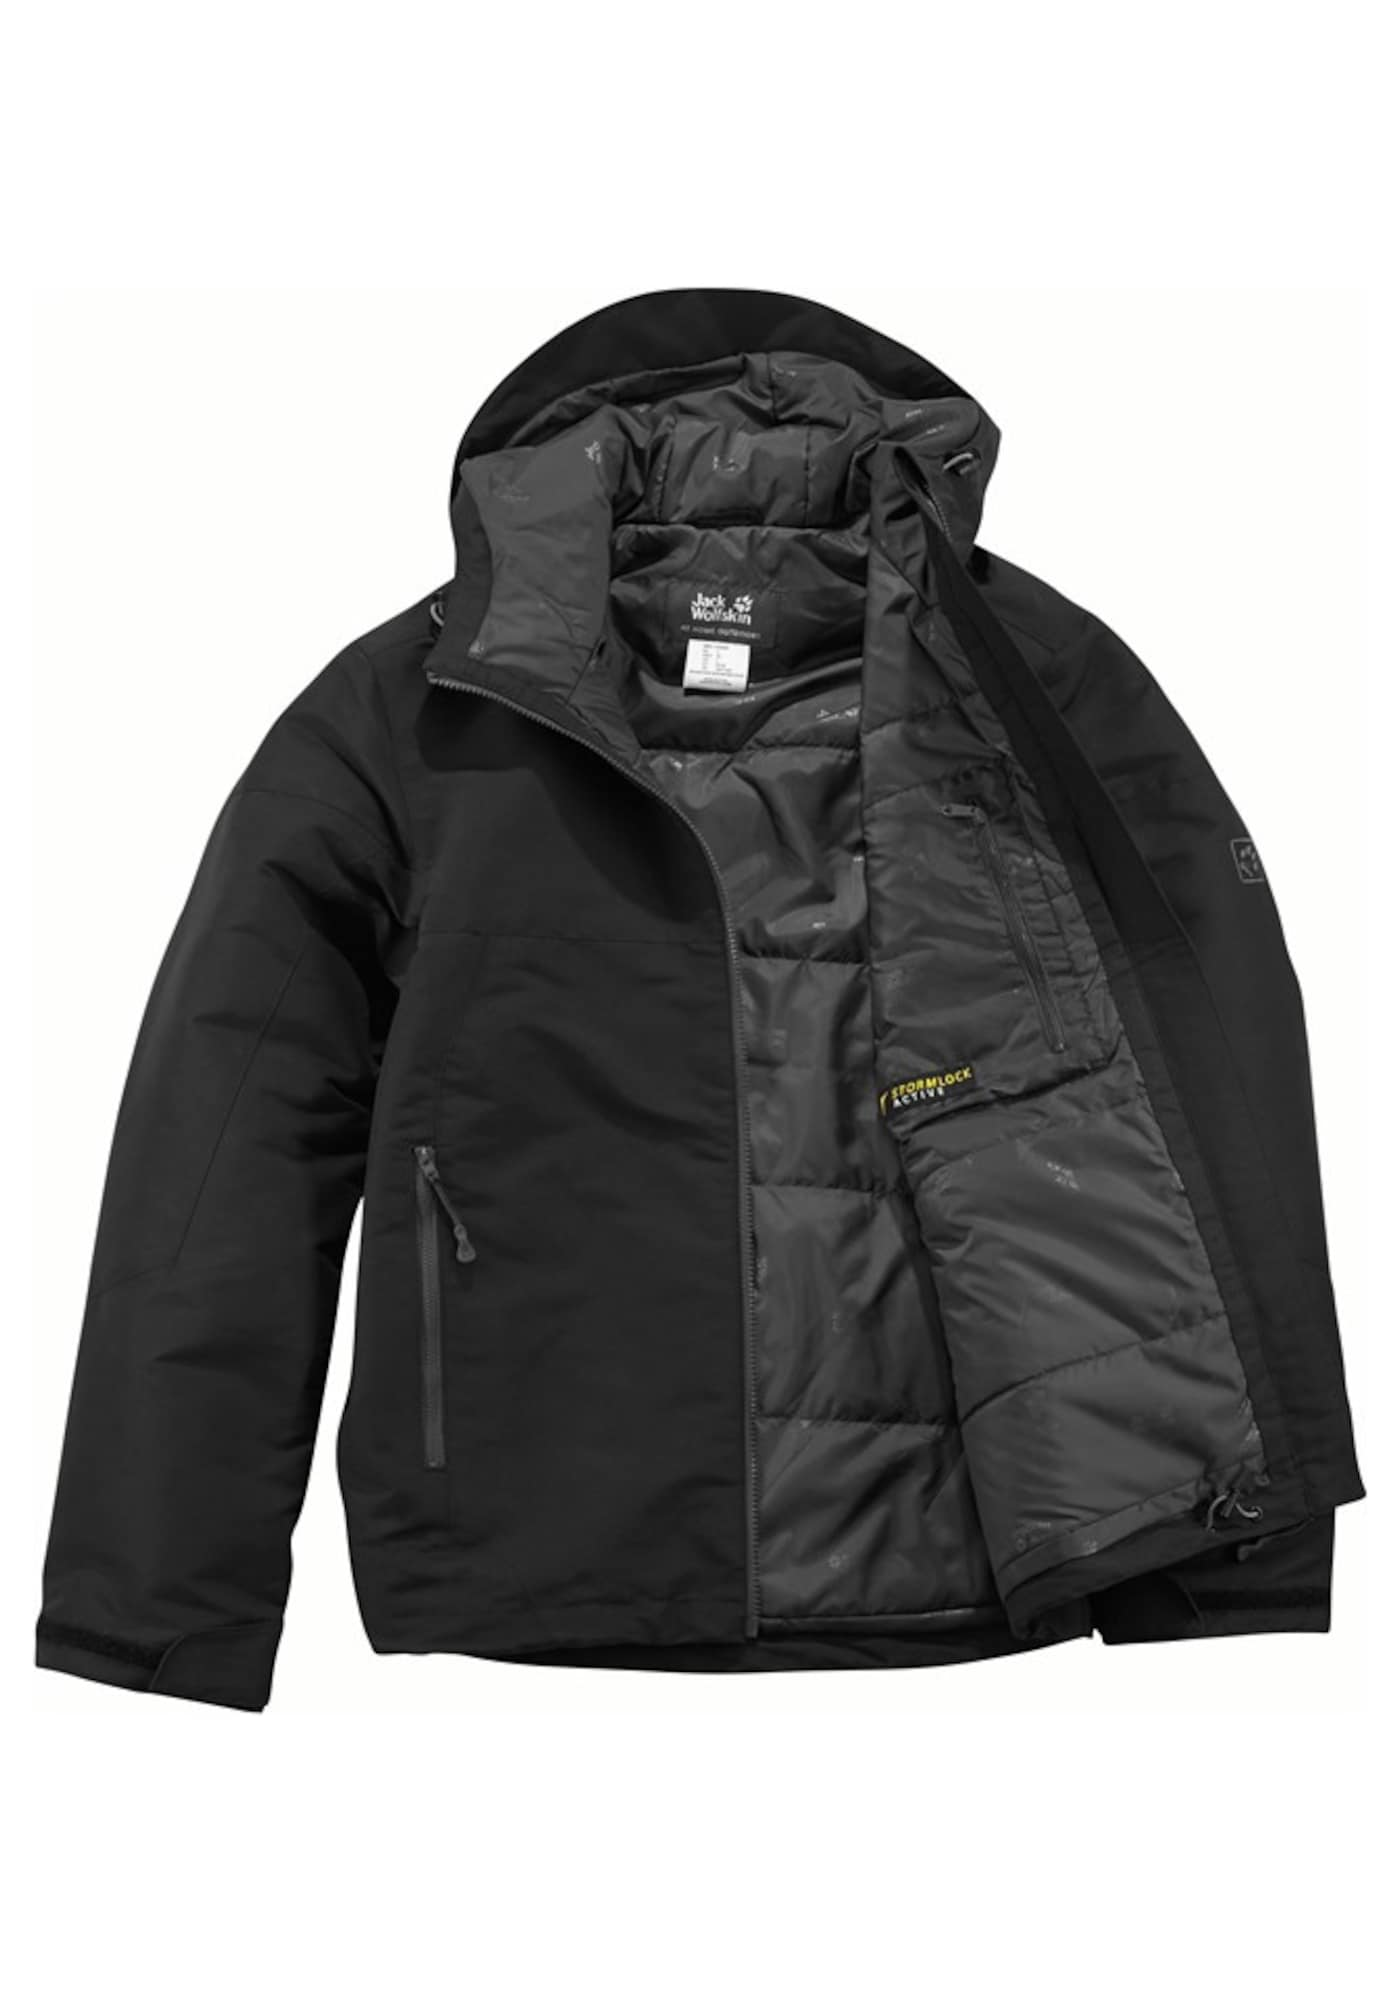 JACK WOLFSKIN, Heren Outdoorjas, antraciet